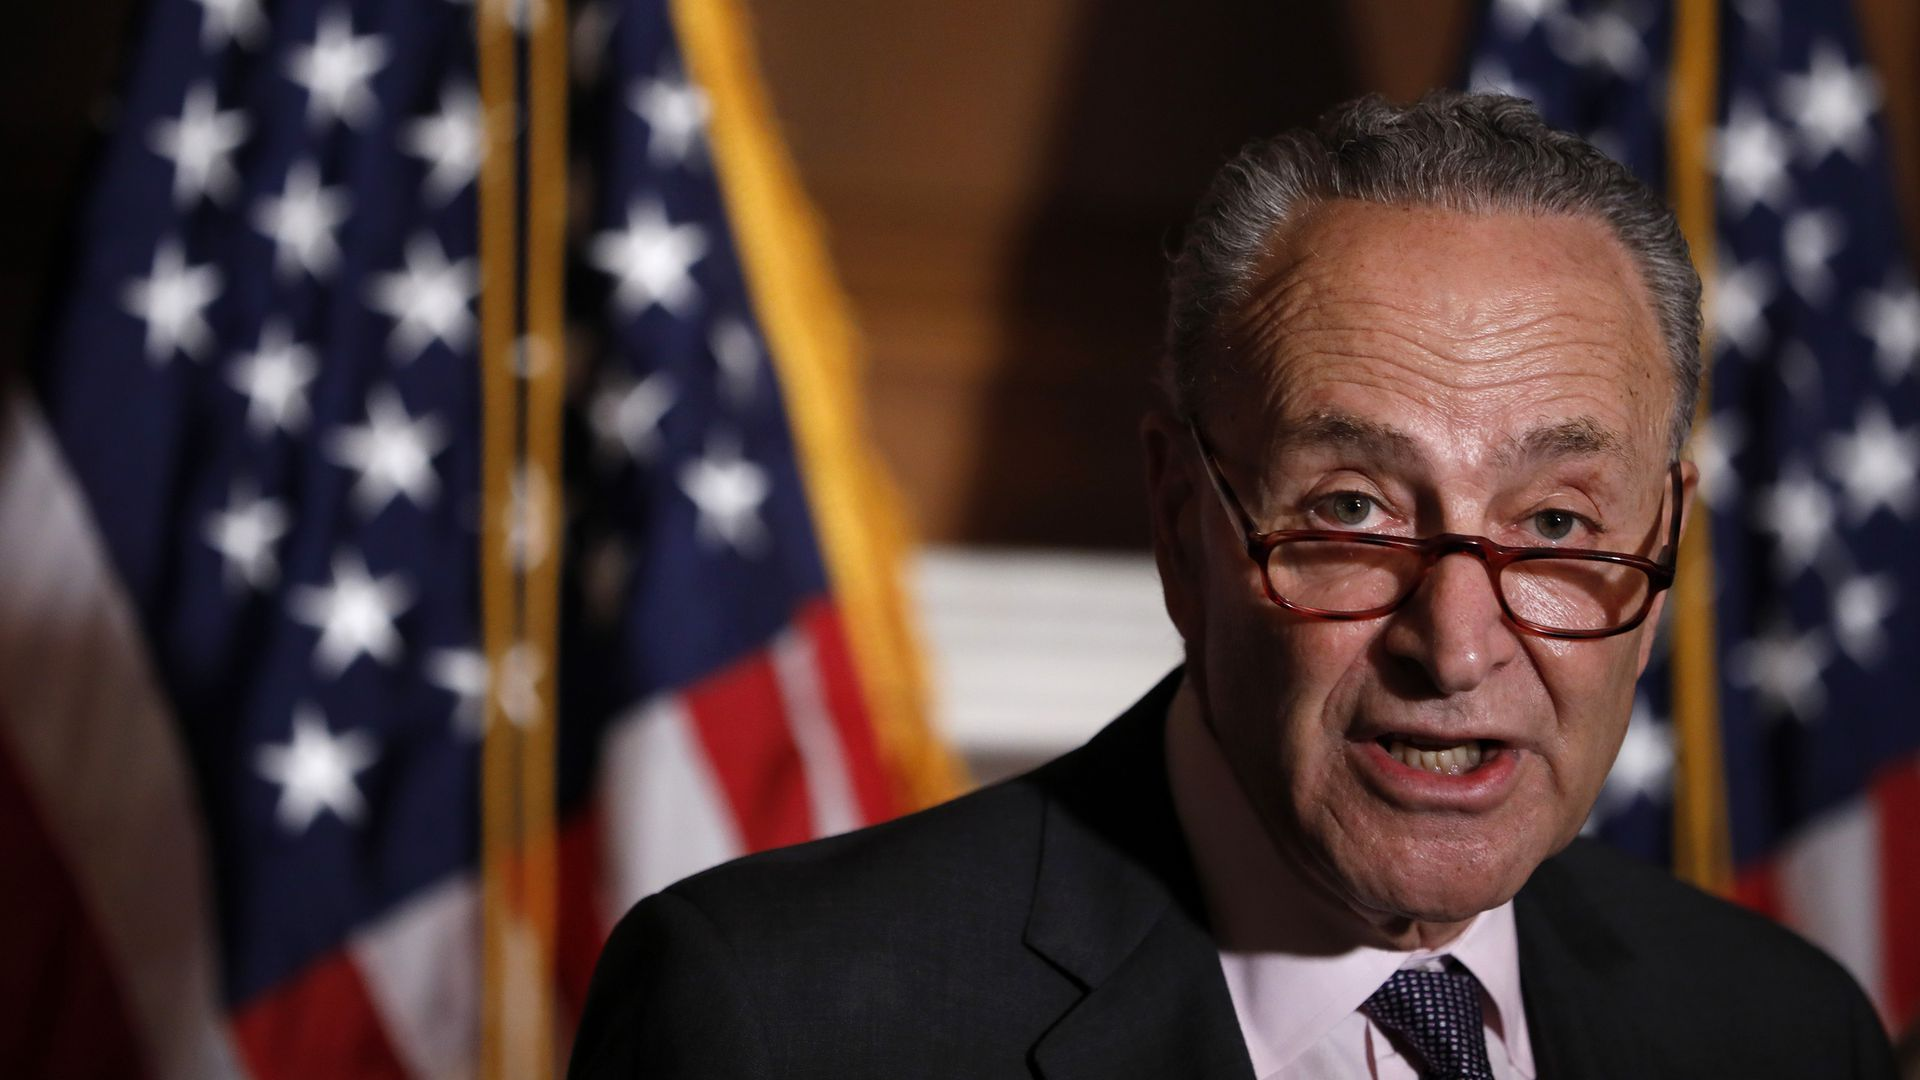 Senate Minority Leader Chuck Schumer. Photo: Aaron P. Bernstein/Getty Images